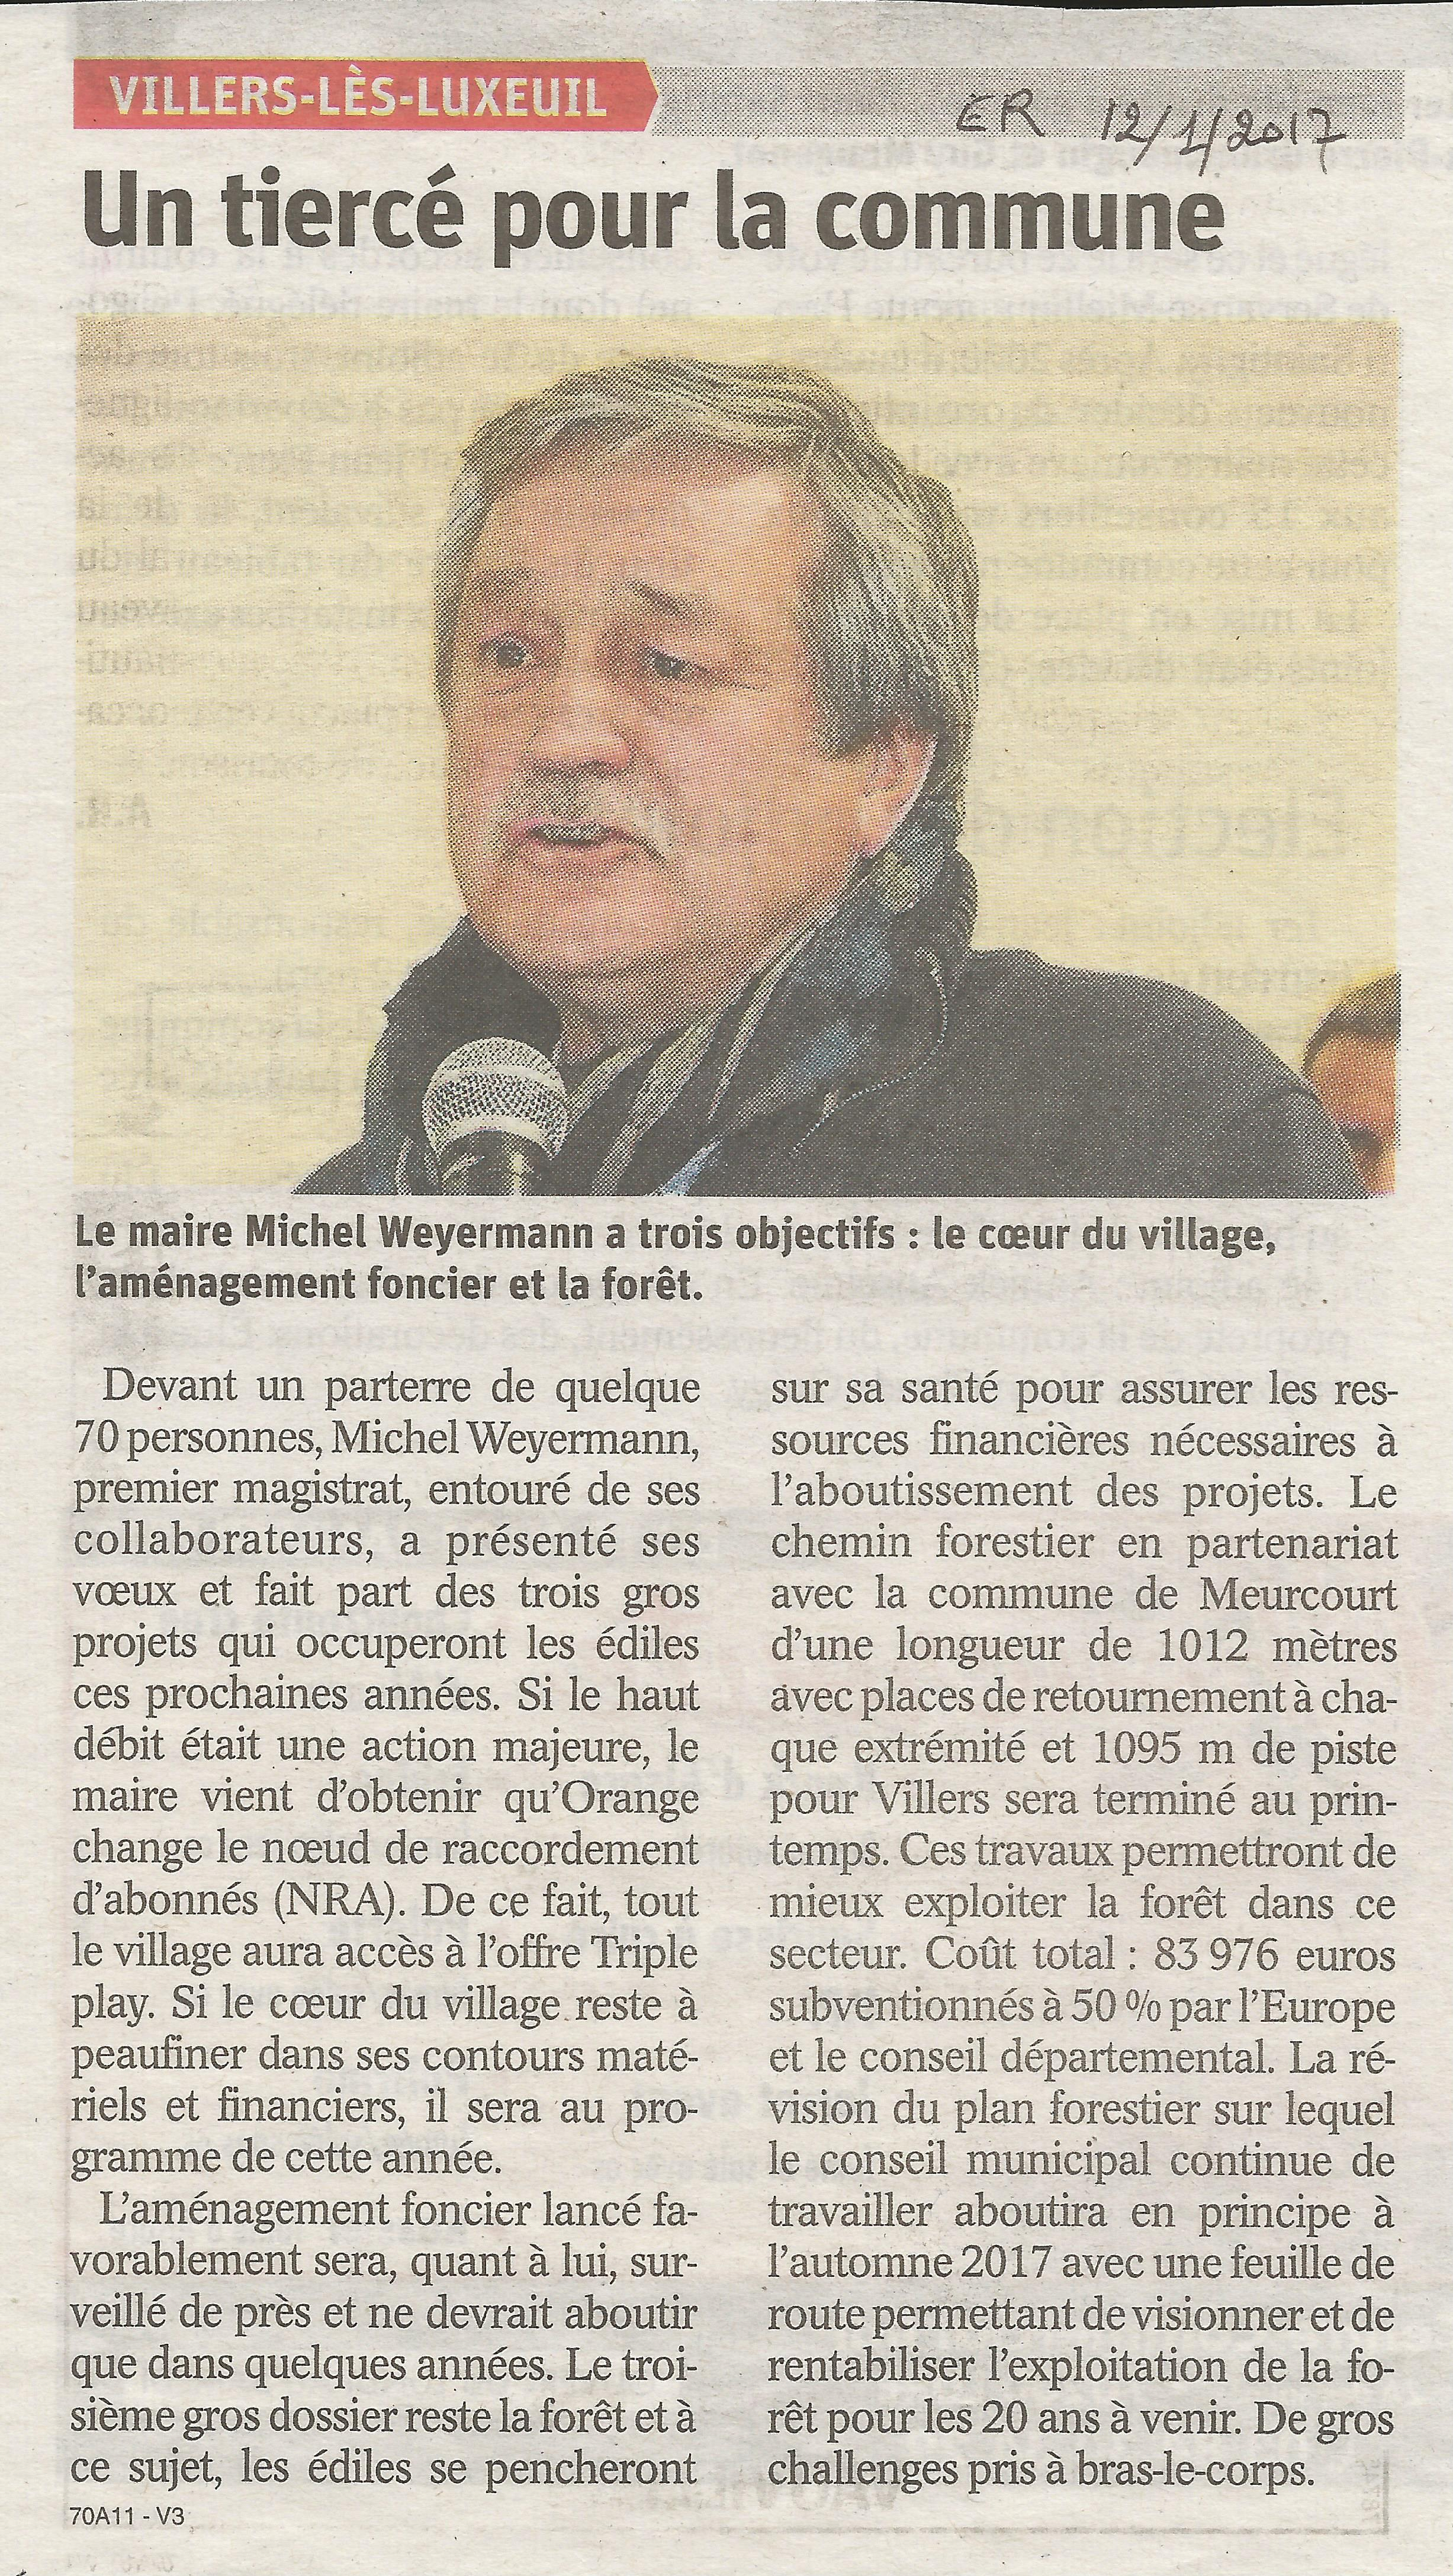 https://www.villers-les-luxeuil.com/projets/villers/files/images/2017_Mairie/Presse/2017_01_12.jpg